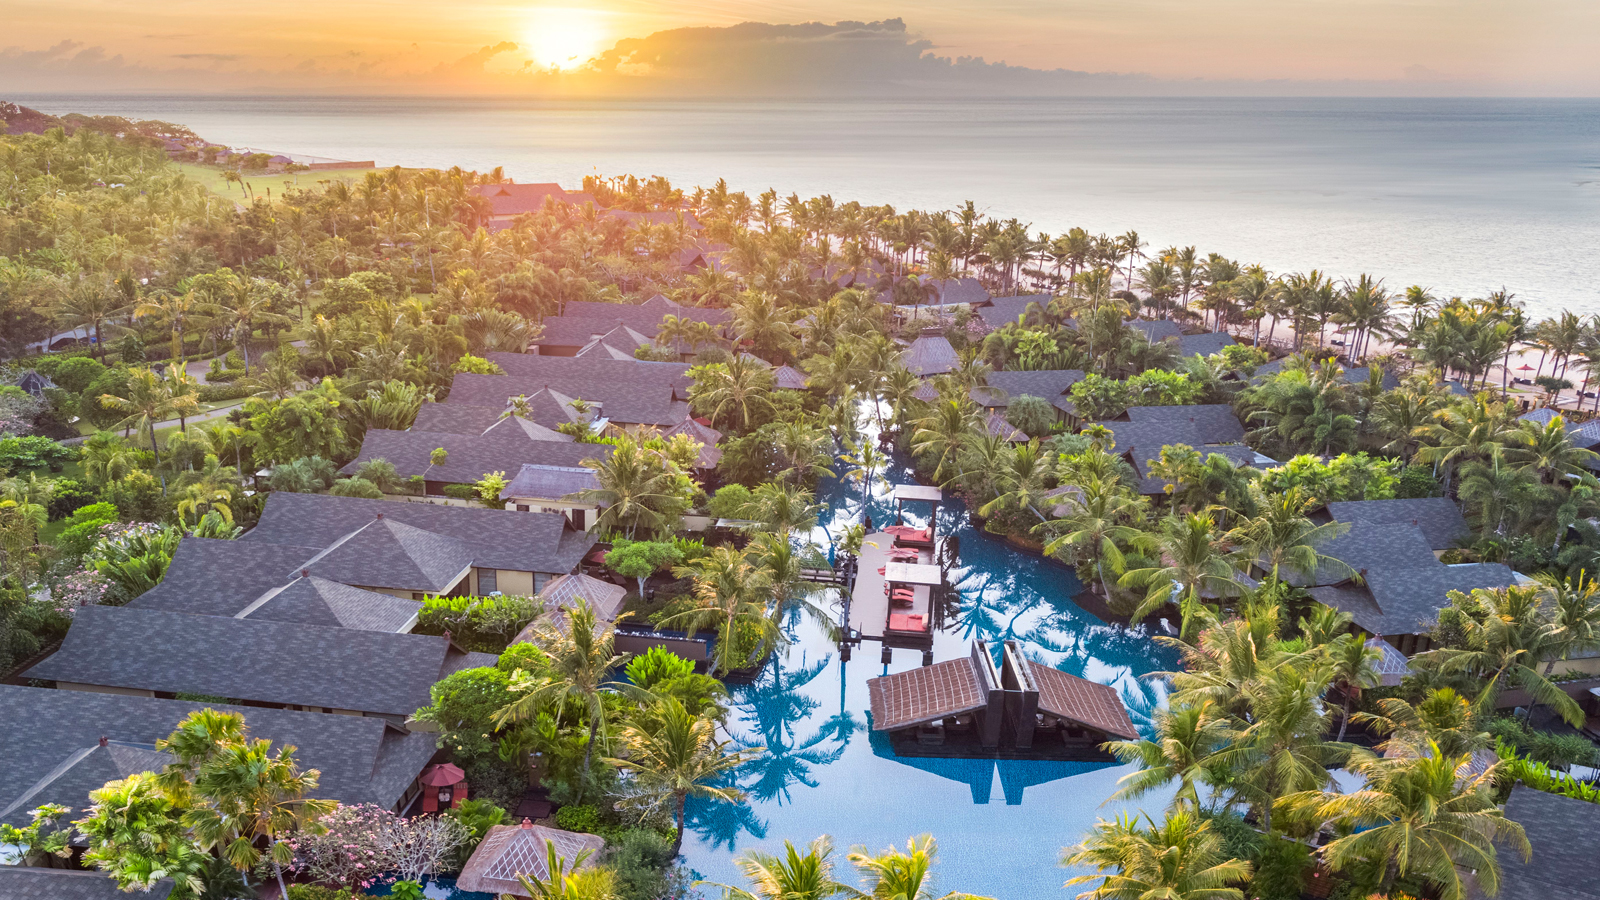 Aerial View - The St. Regis Bali Resort